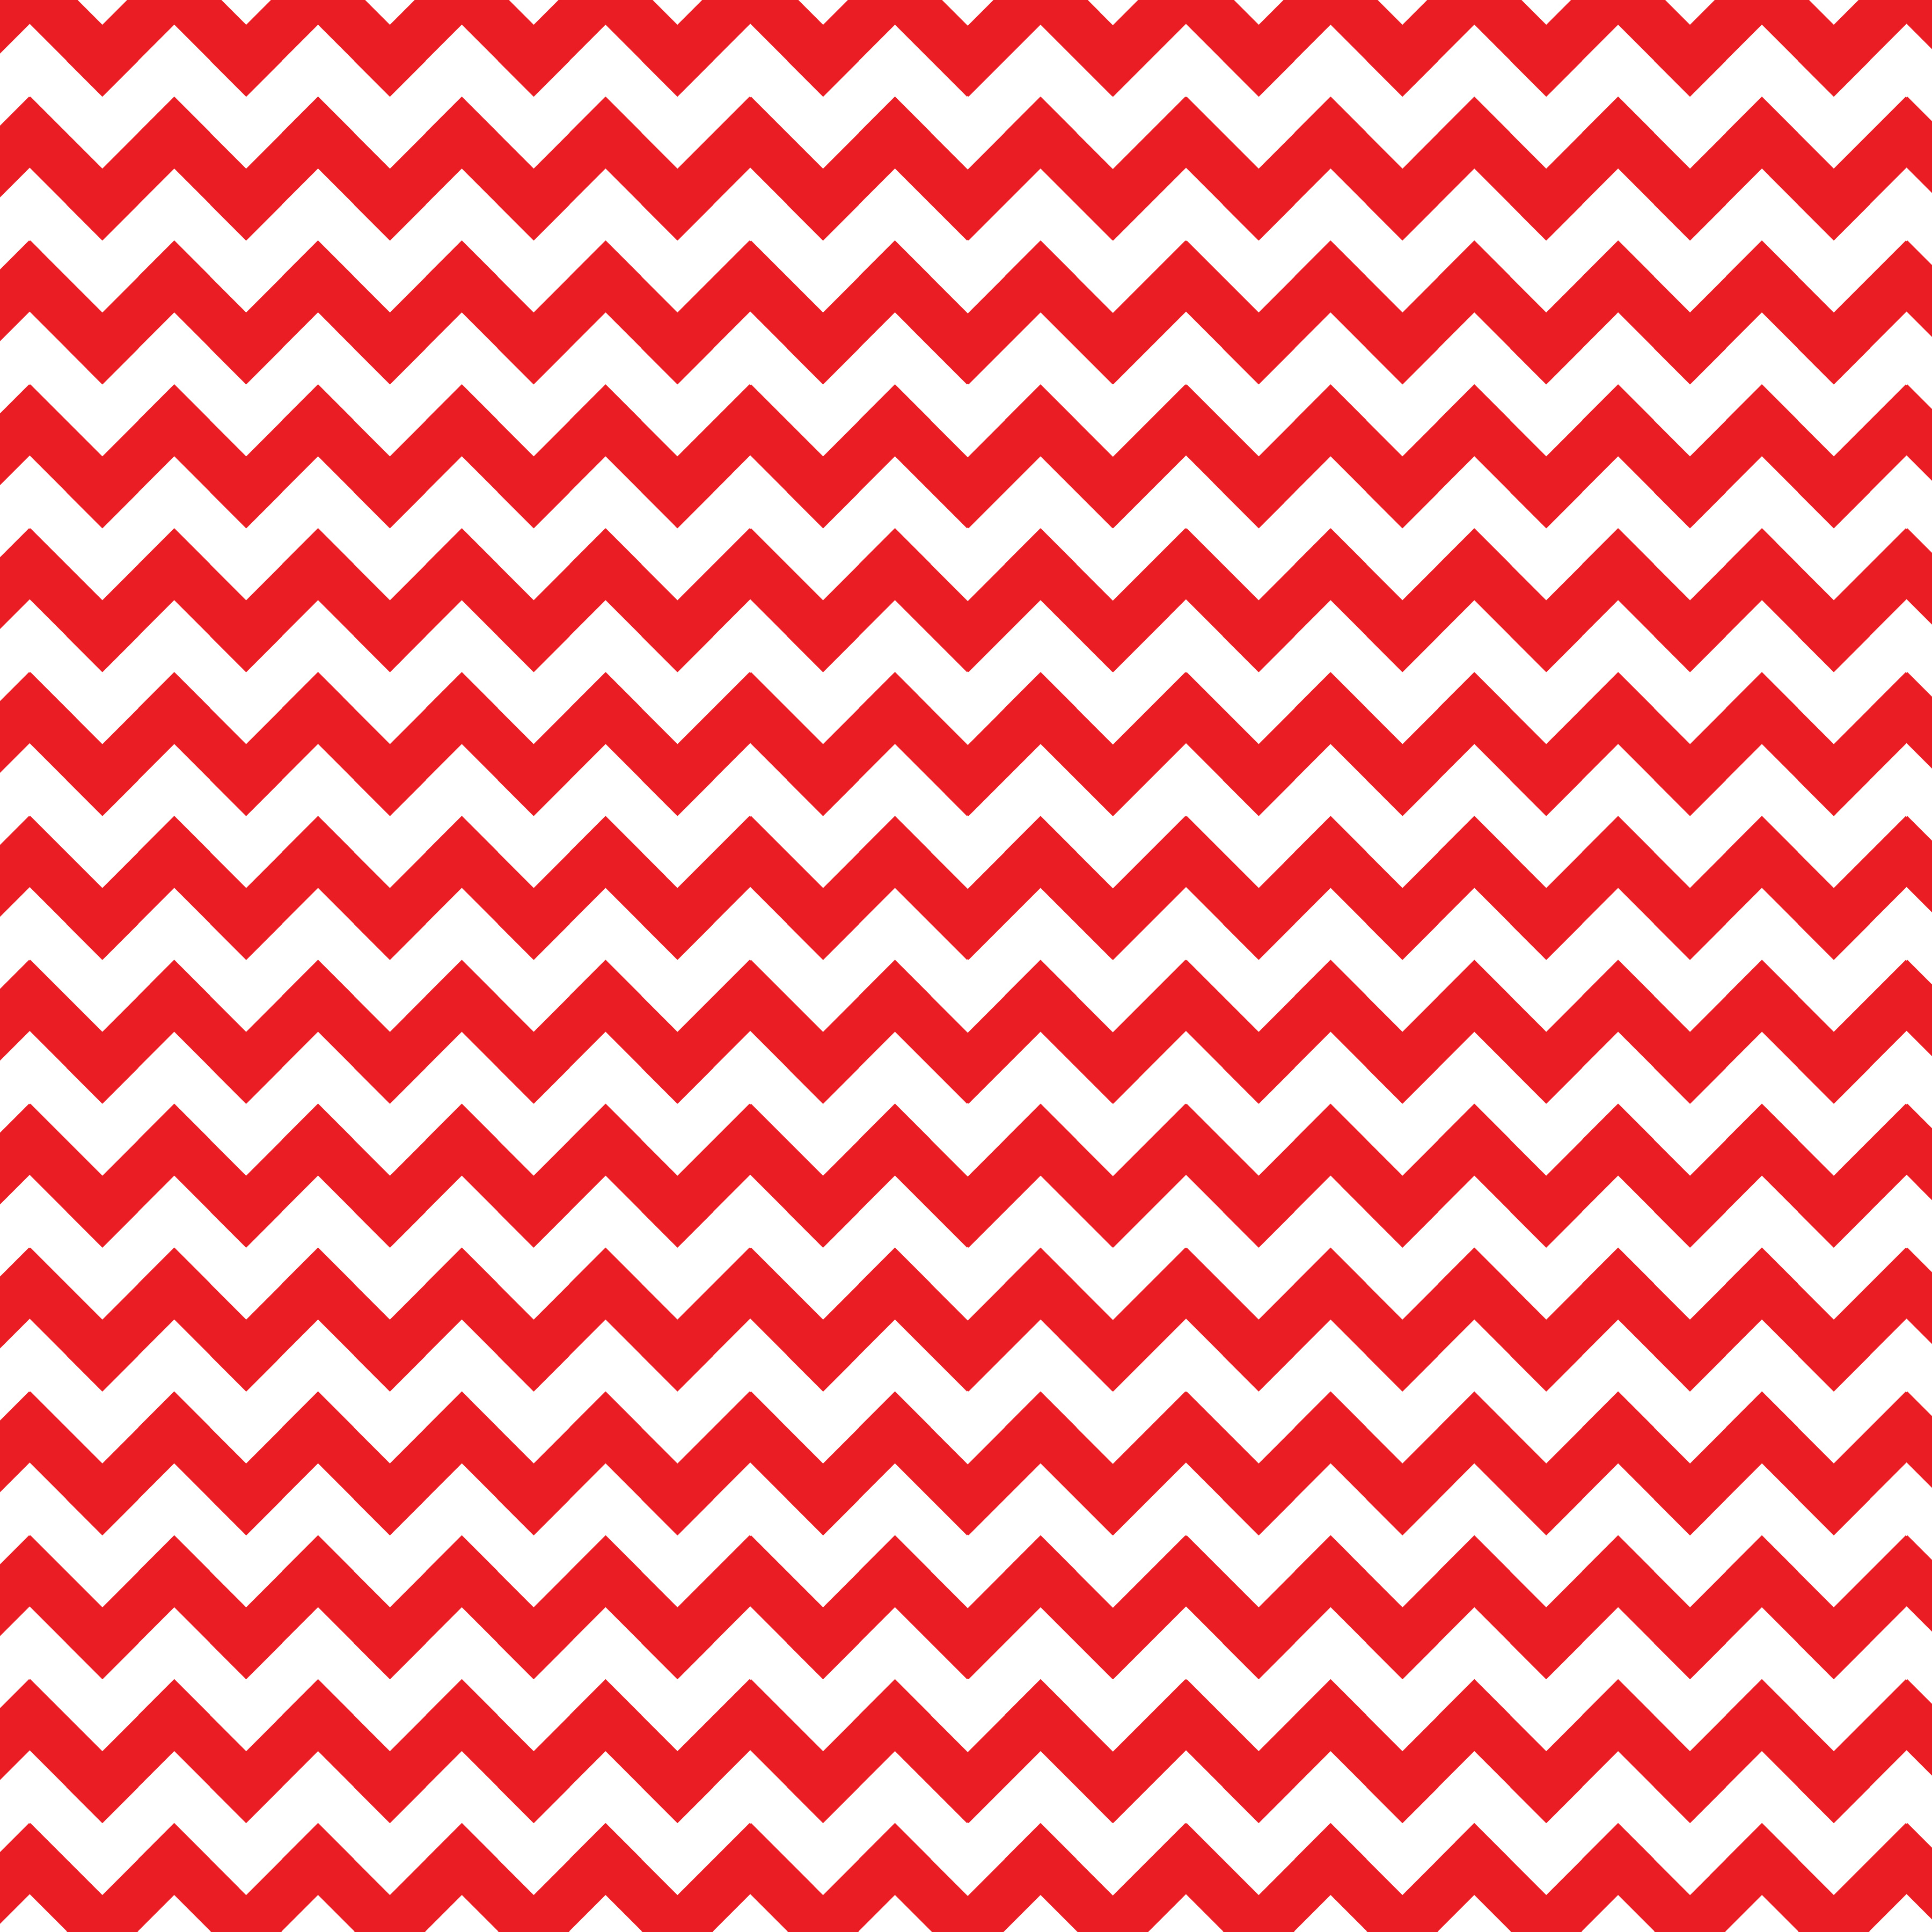 Similiar Red Chevron Pattern Template Keywords